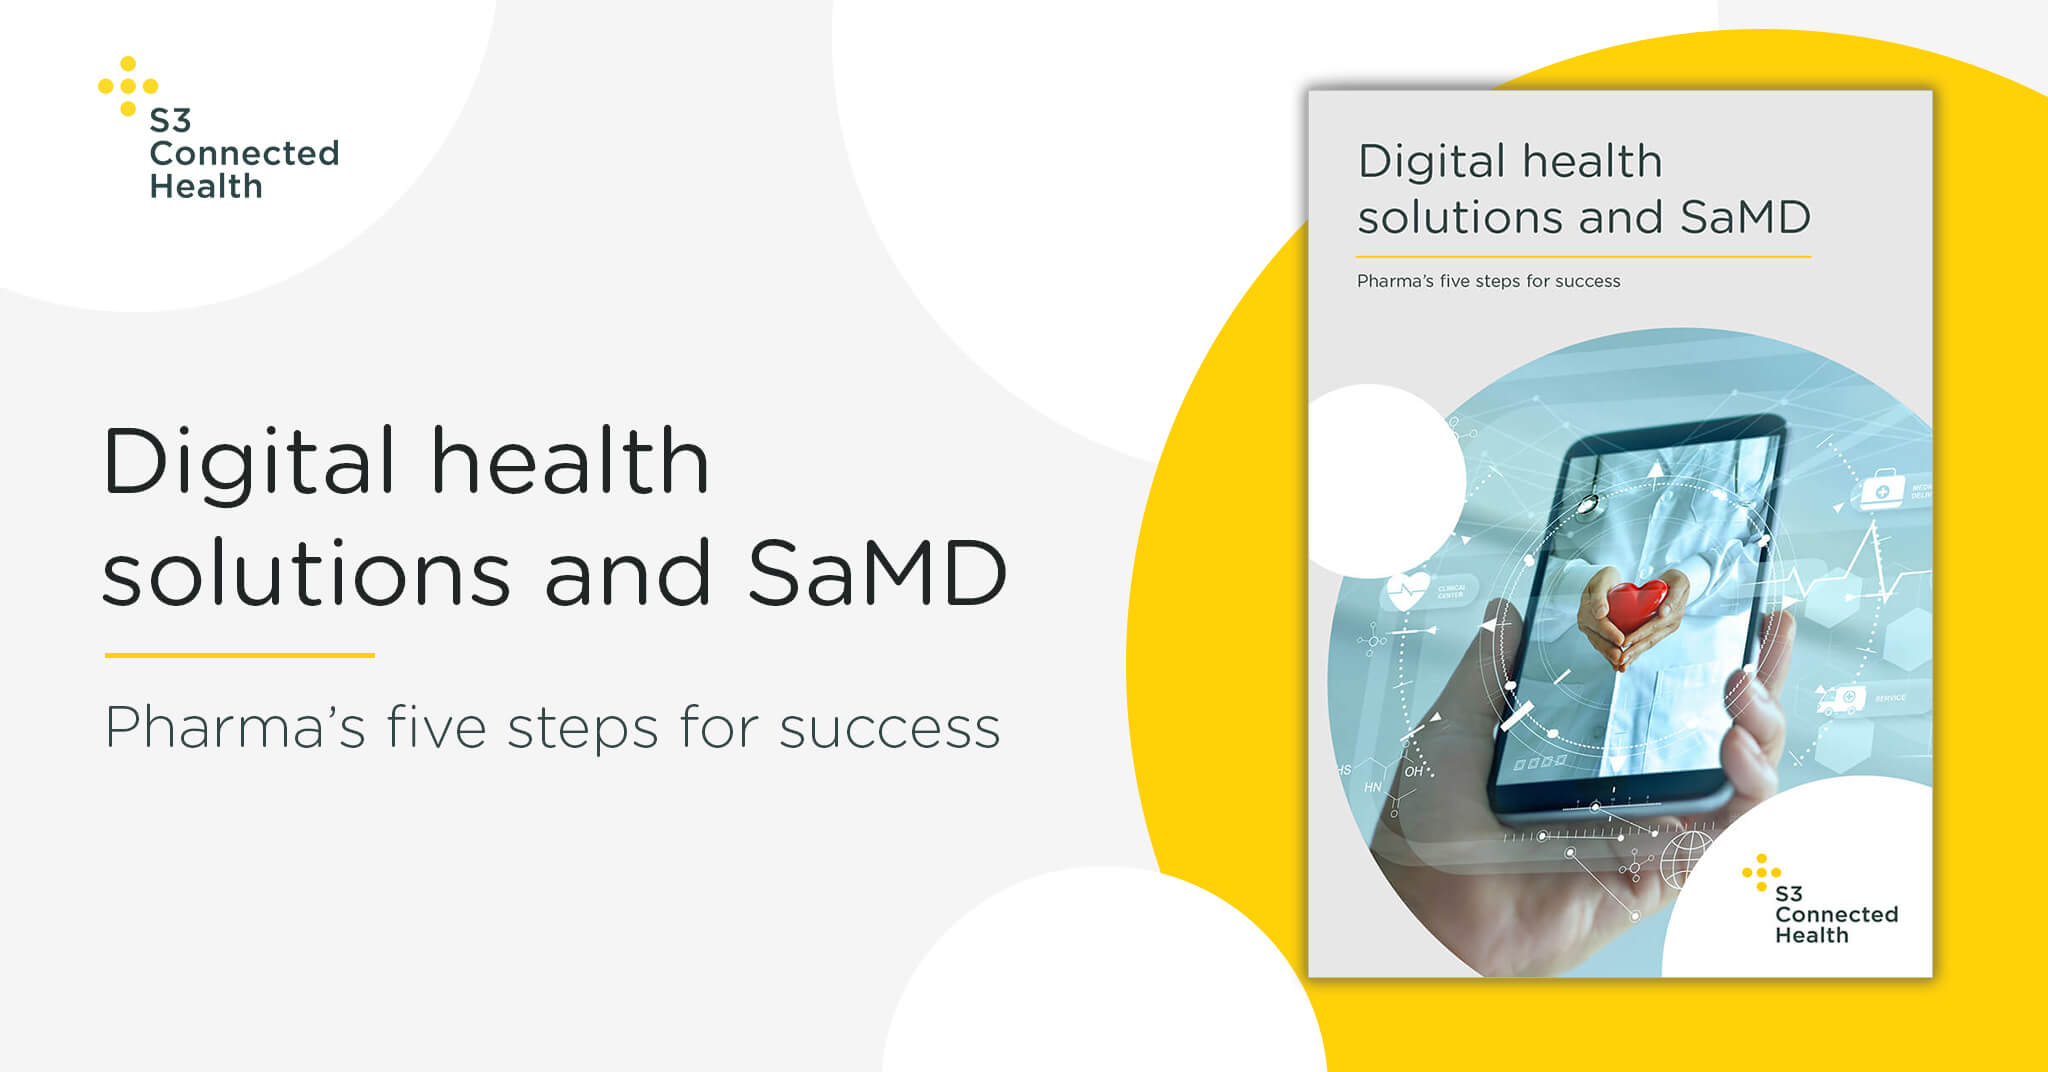 Whitepaper release: Digital health solutions and SaMD - pharma's five steps for success